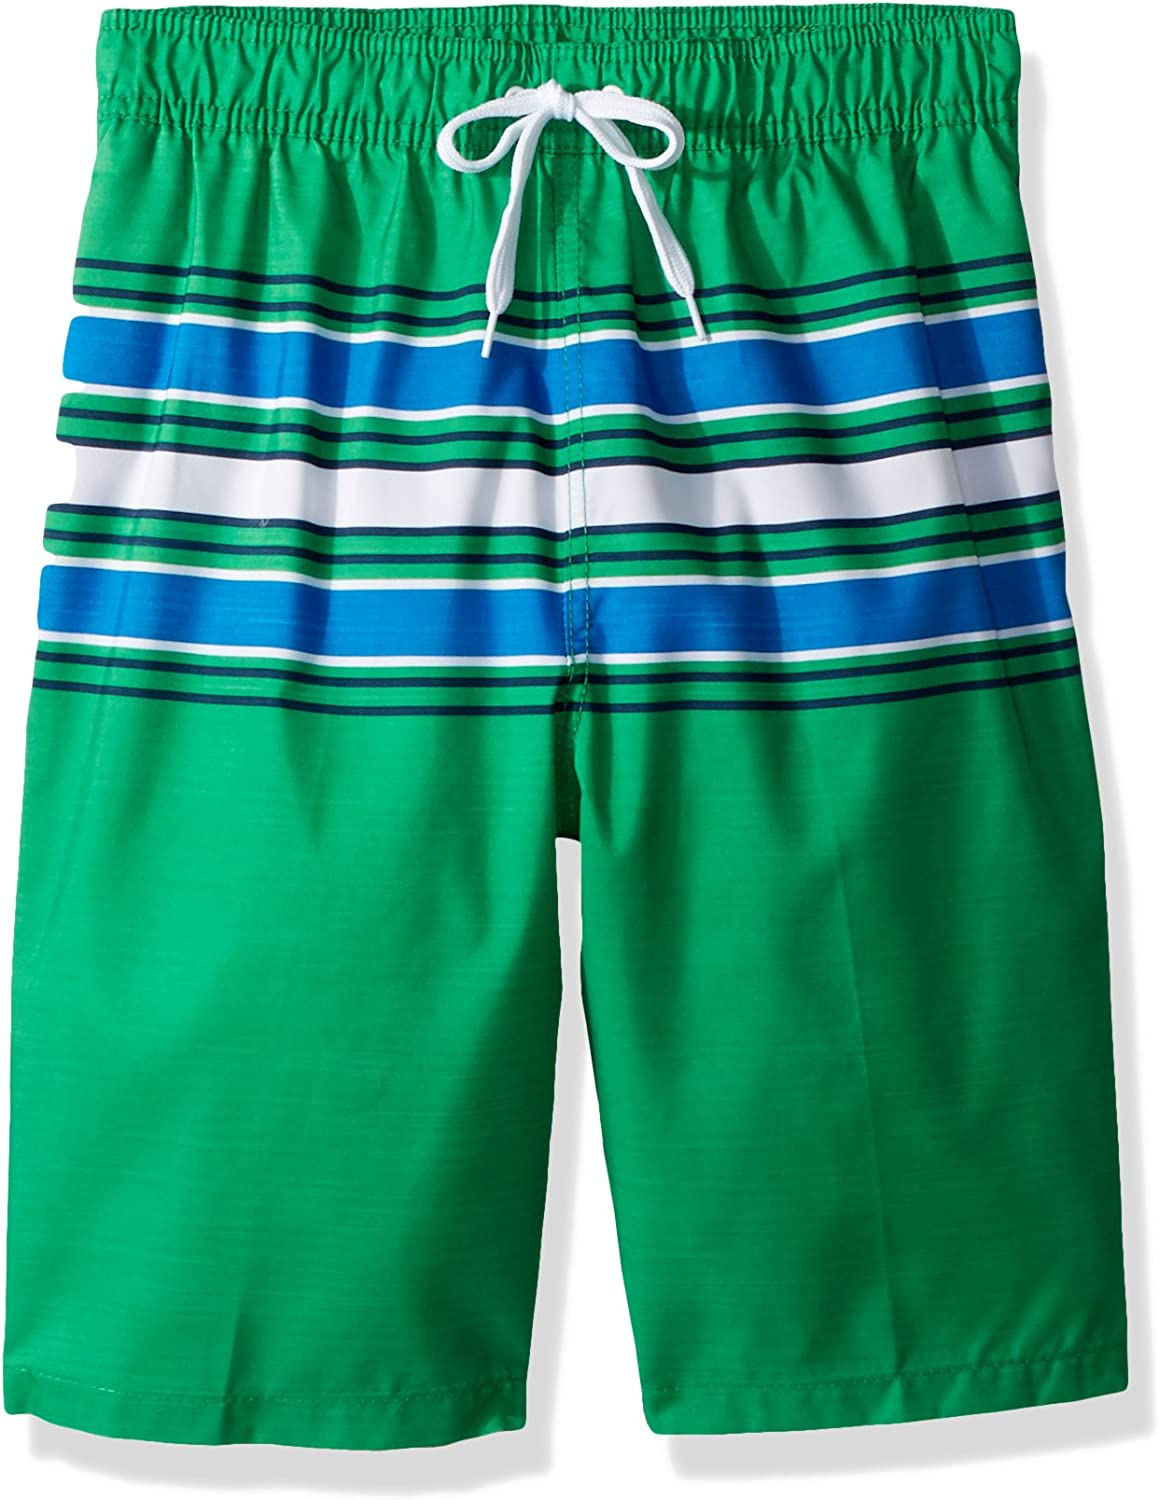 Kanu Surf Boys Specter Quick Dry UPF 50 Beach Swim Trunk